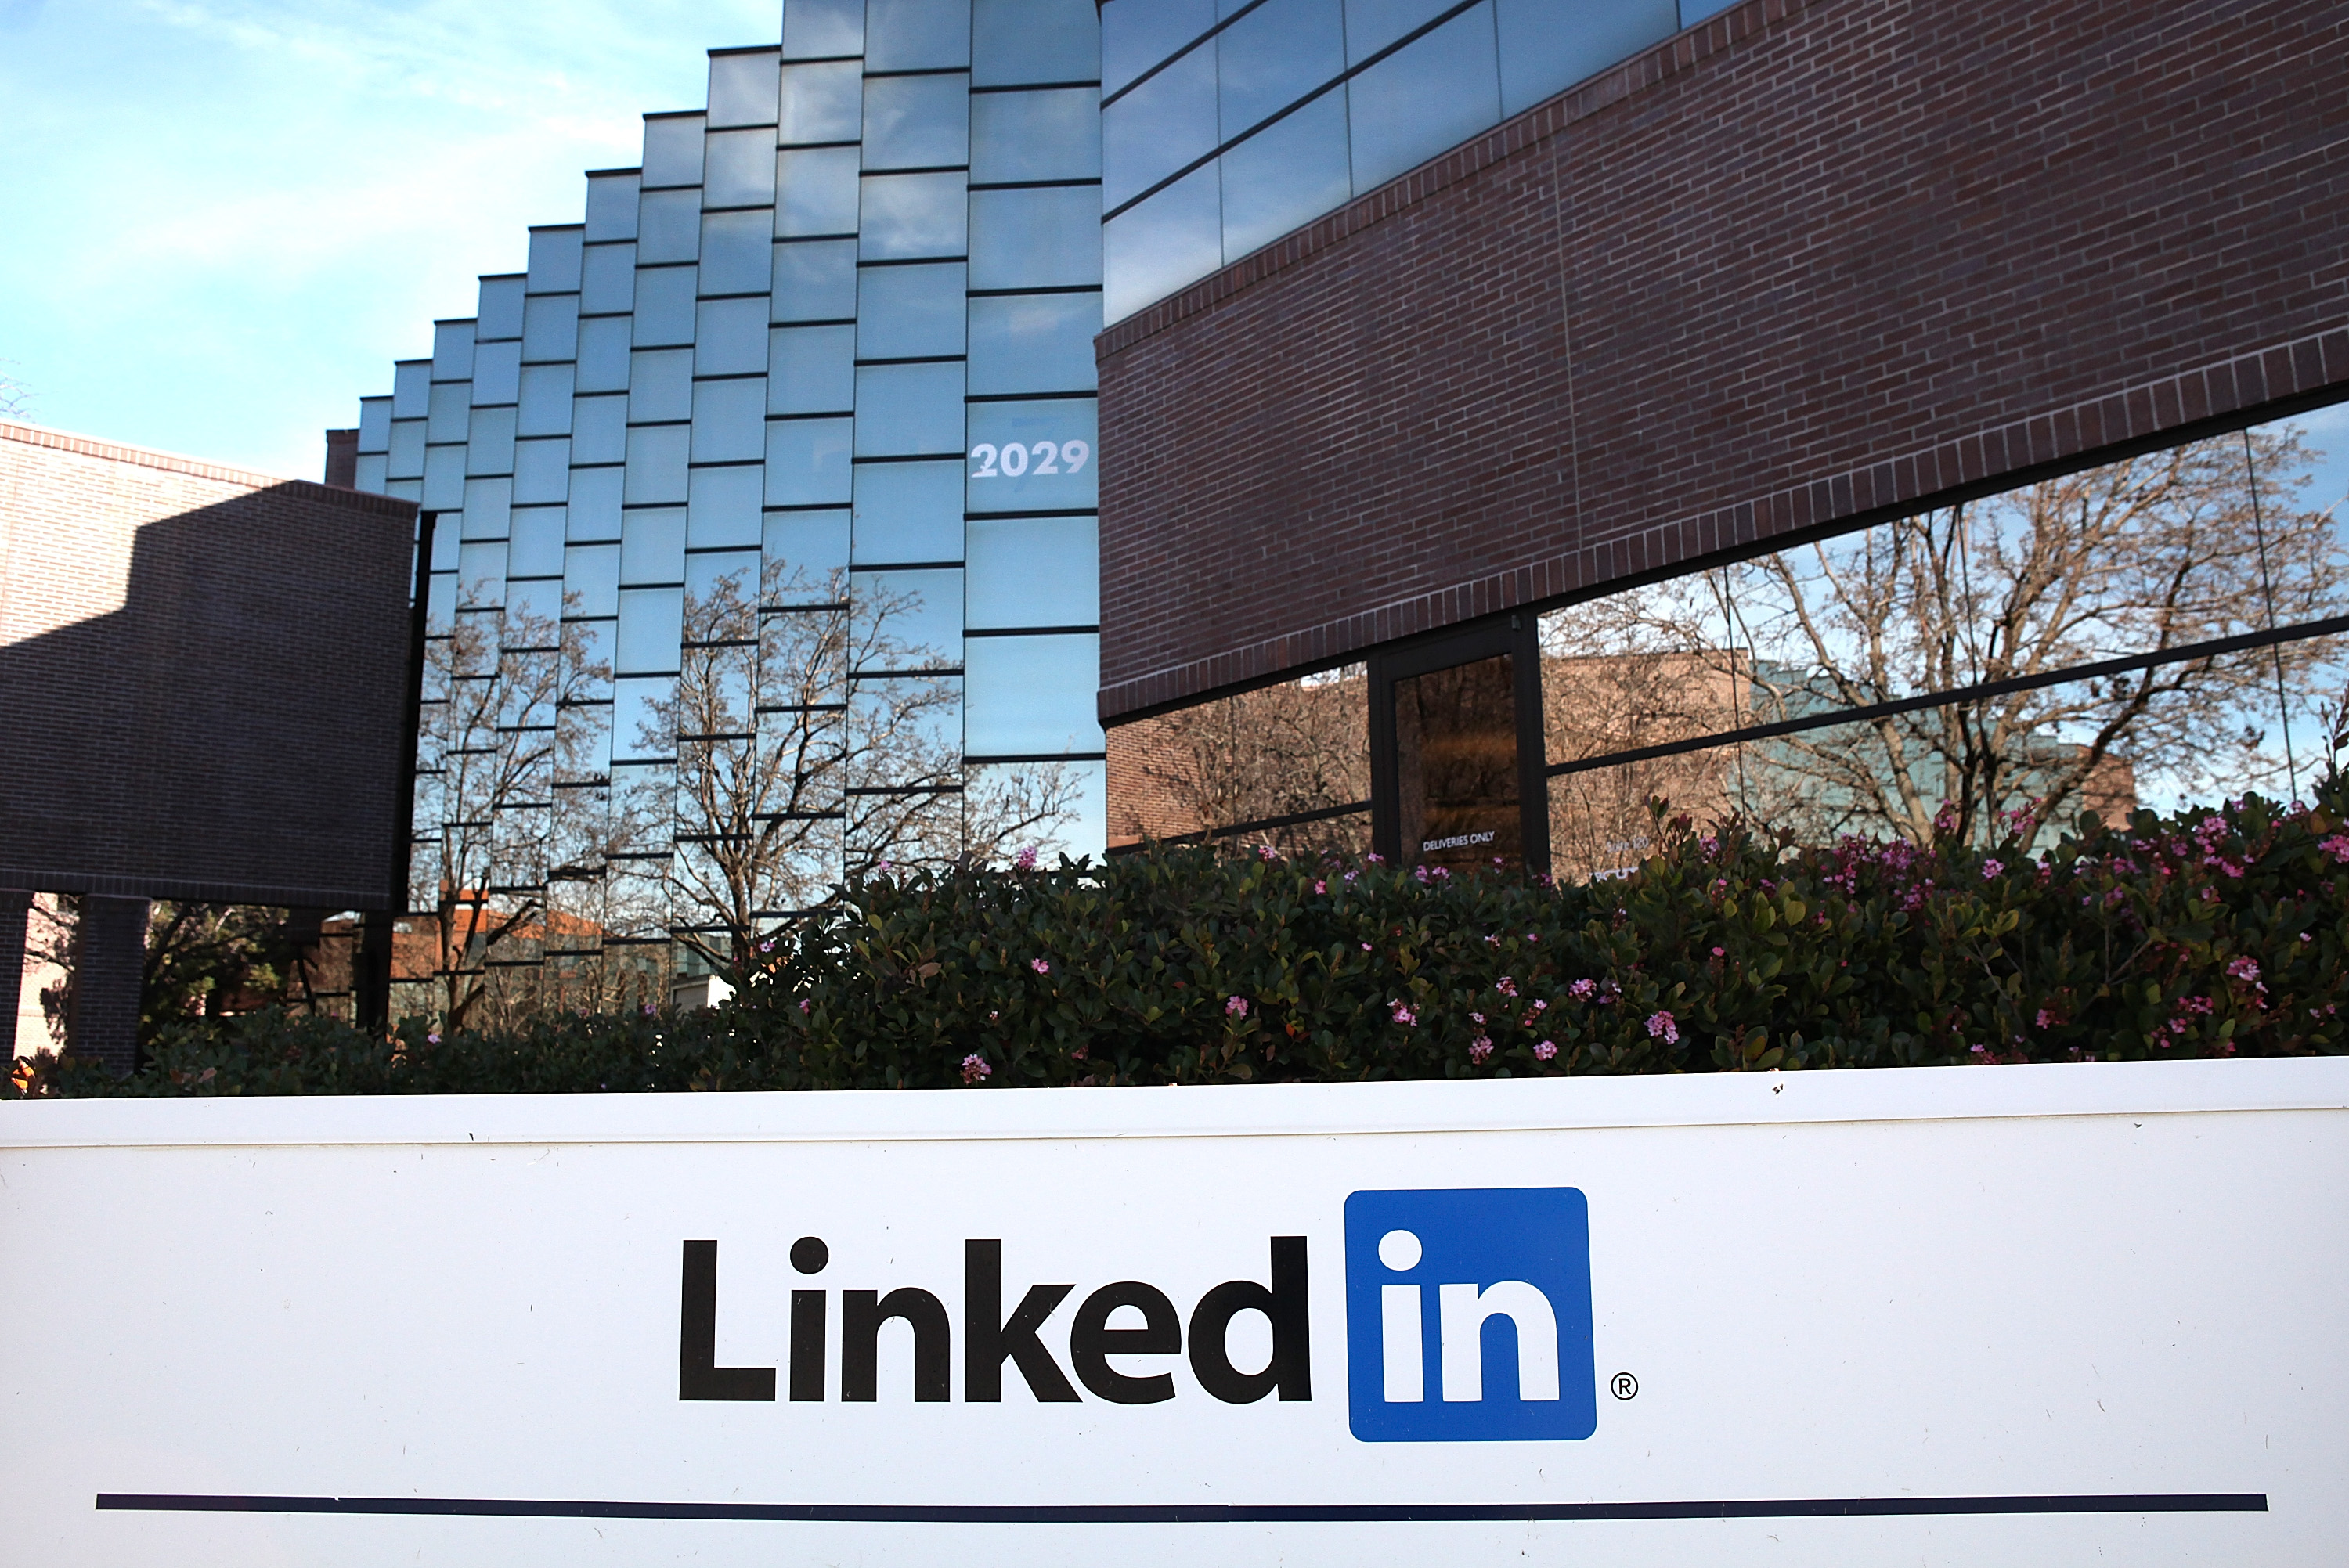 Microsoft helps LinkedIn launch its first live video streaming service